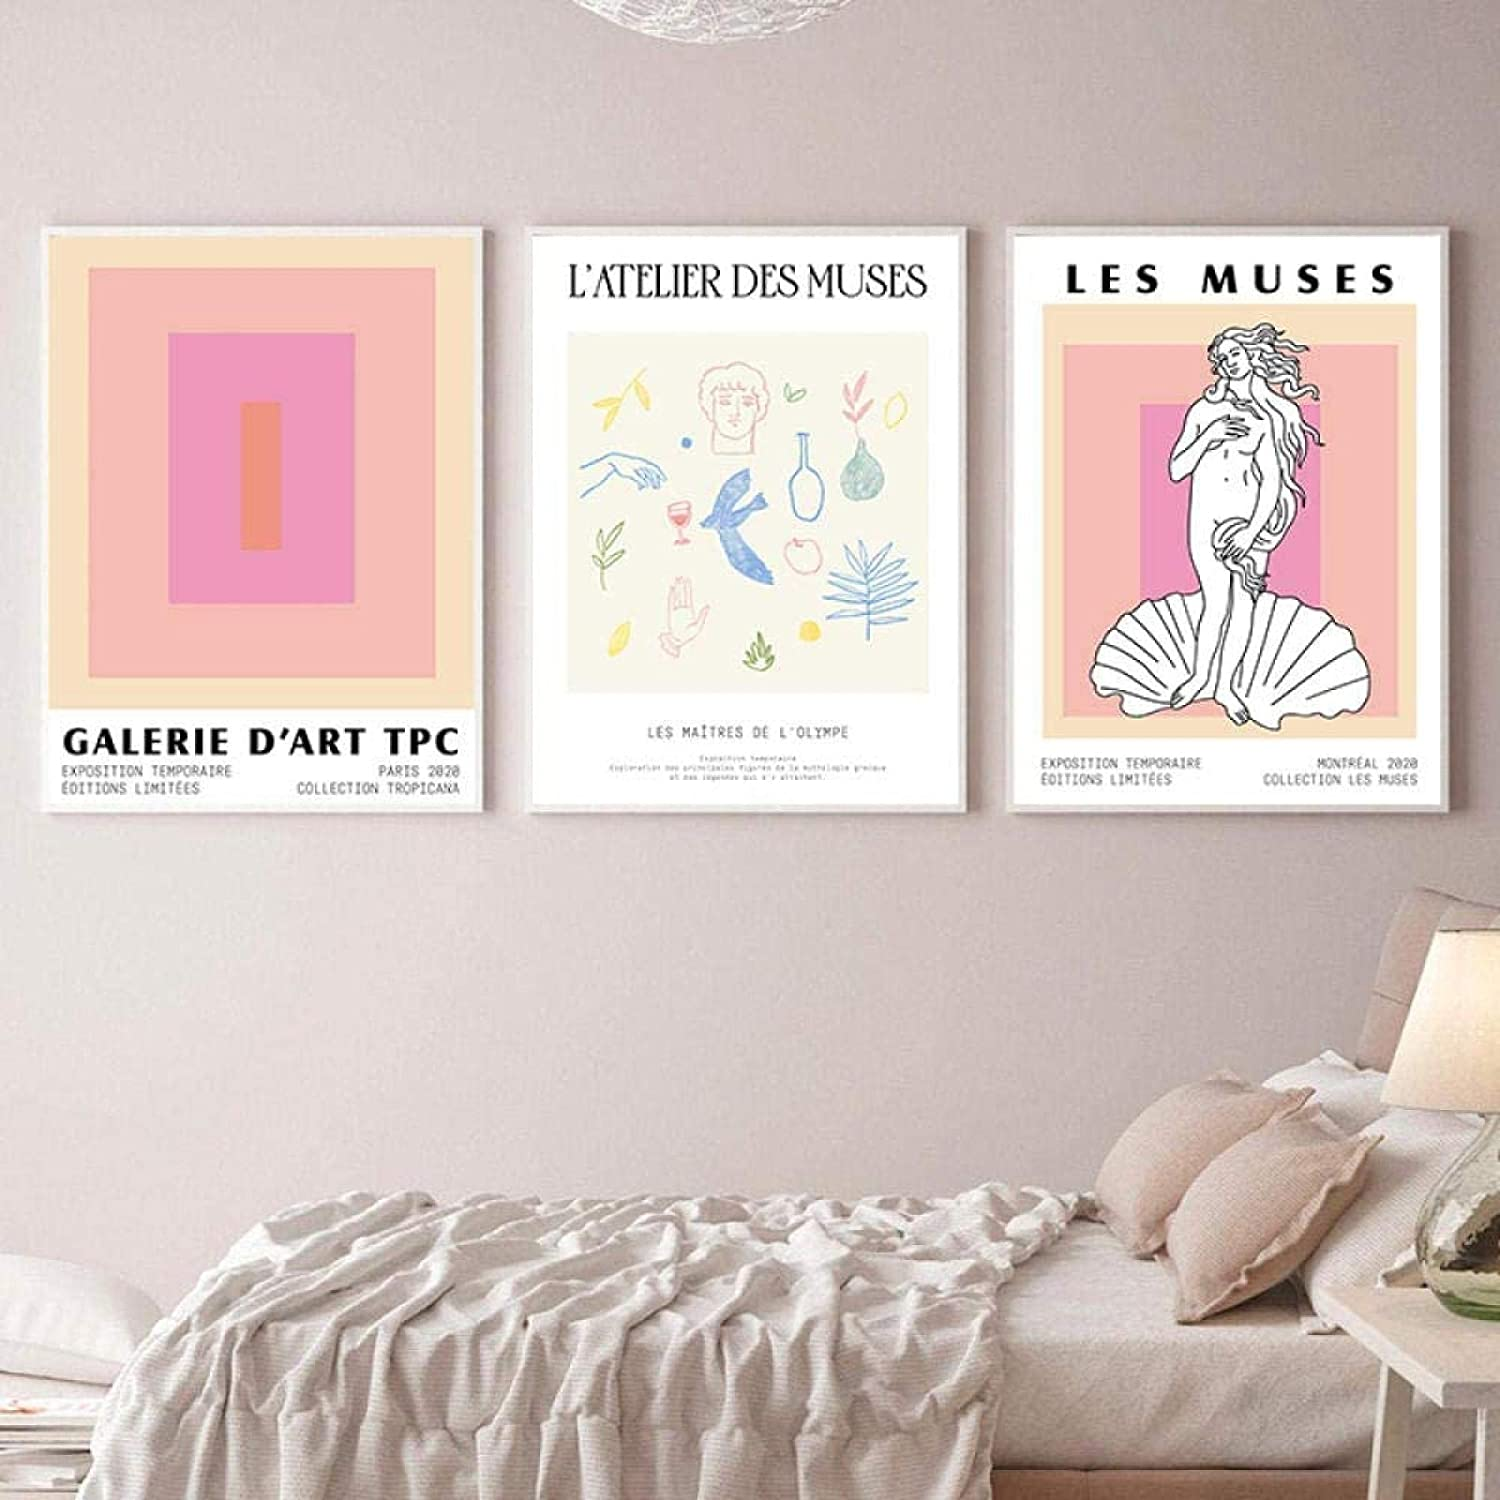 LangGe Nordic Style 3 Piece 11.8x19.7in(30x50cm) No Frame Color Block Matisse Poster Abstract Wall Art Les Muses Greek Statue Greek Goddess Mid Century Home Decor